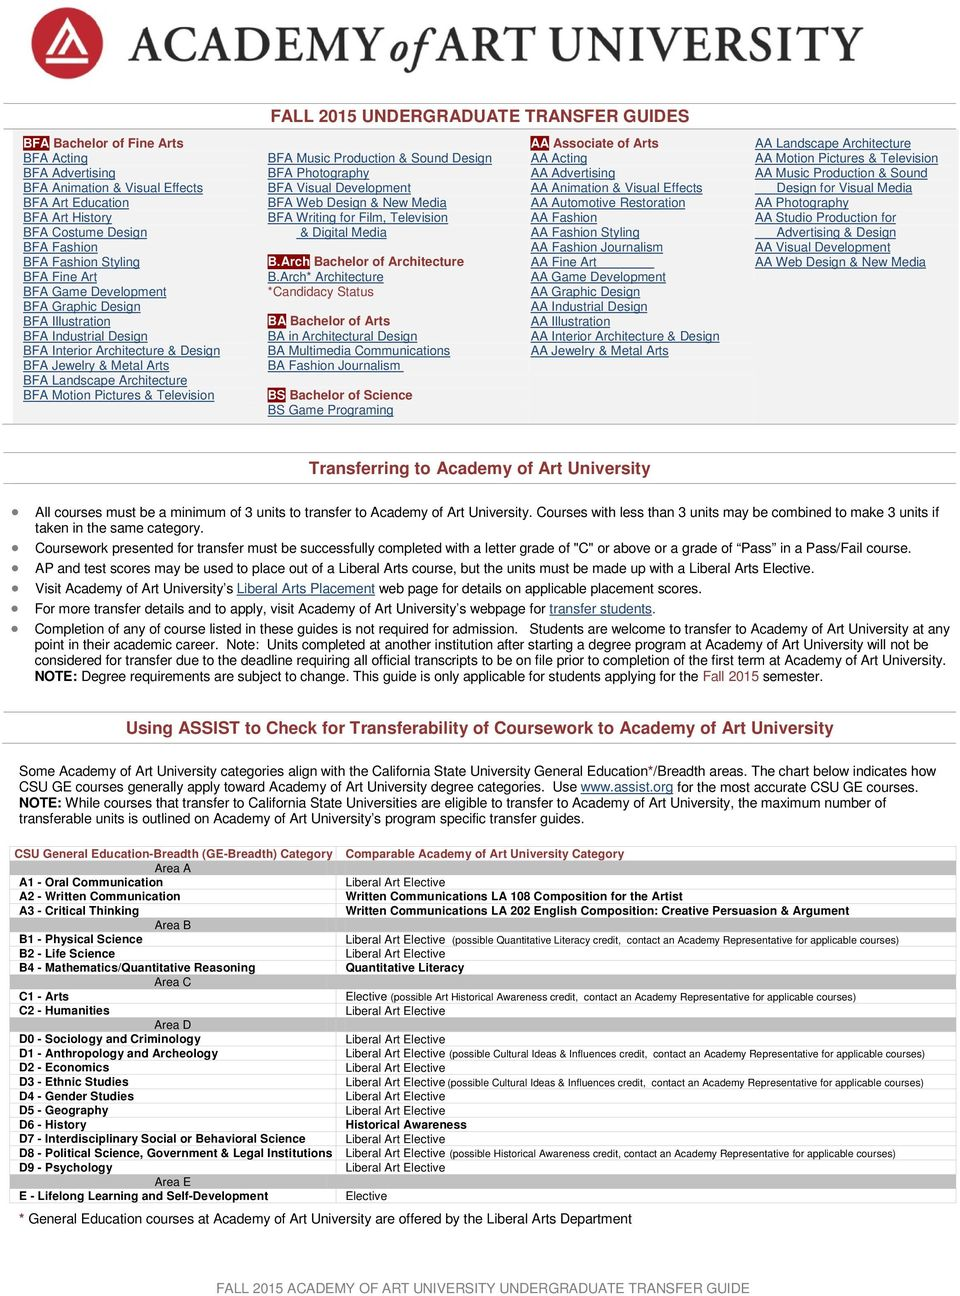 Fall 2015 Undergraduate Transfer Guides Transferring To Academy Of Art University Pdf Free Download